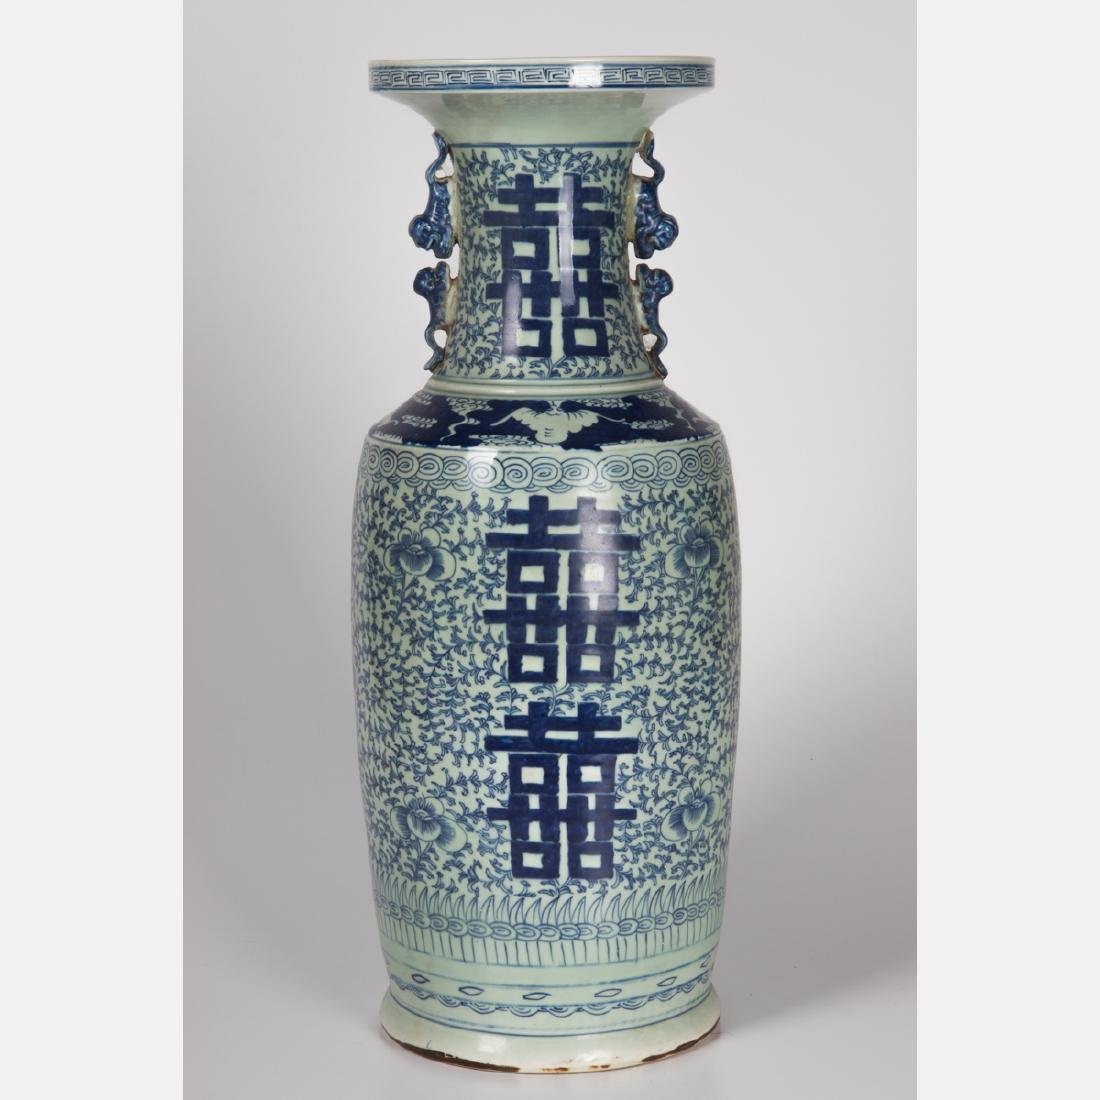 A Chinese Blue and White Porcelain Vase, 19th/20th